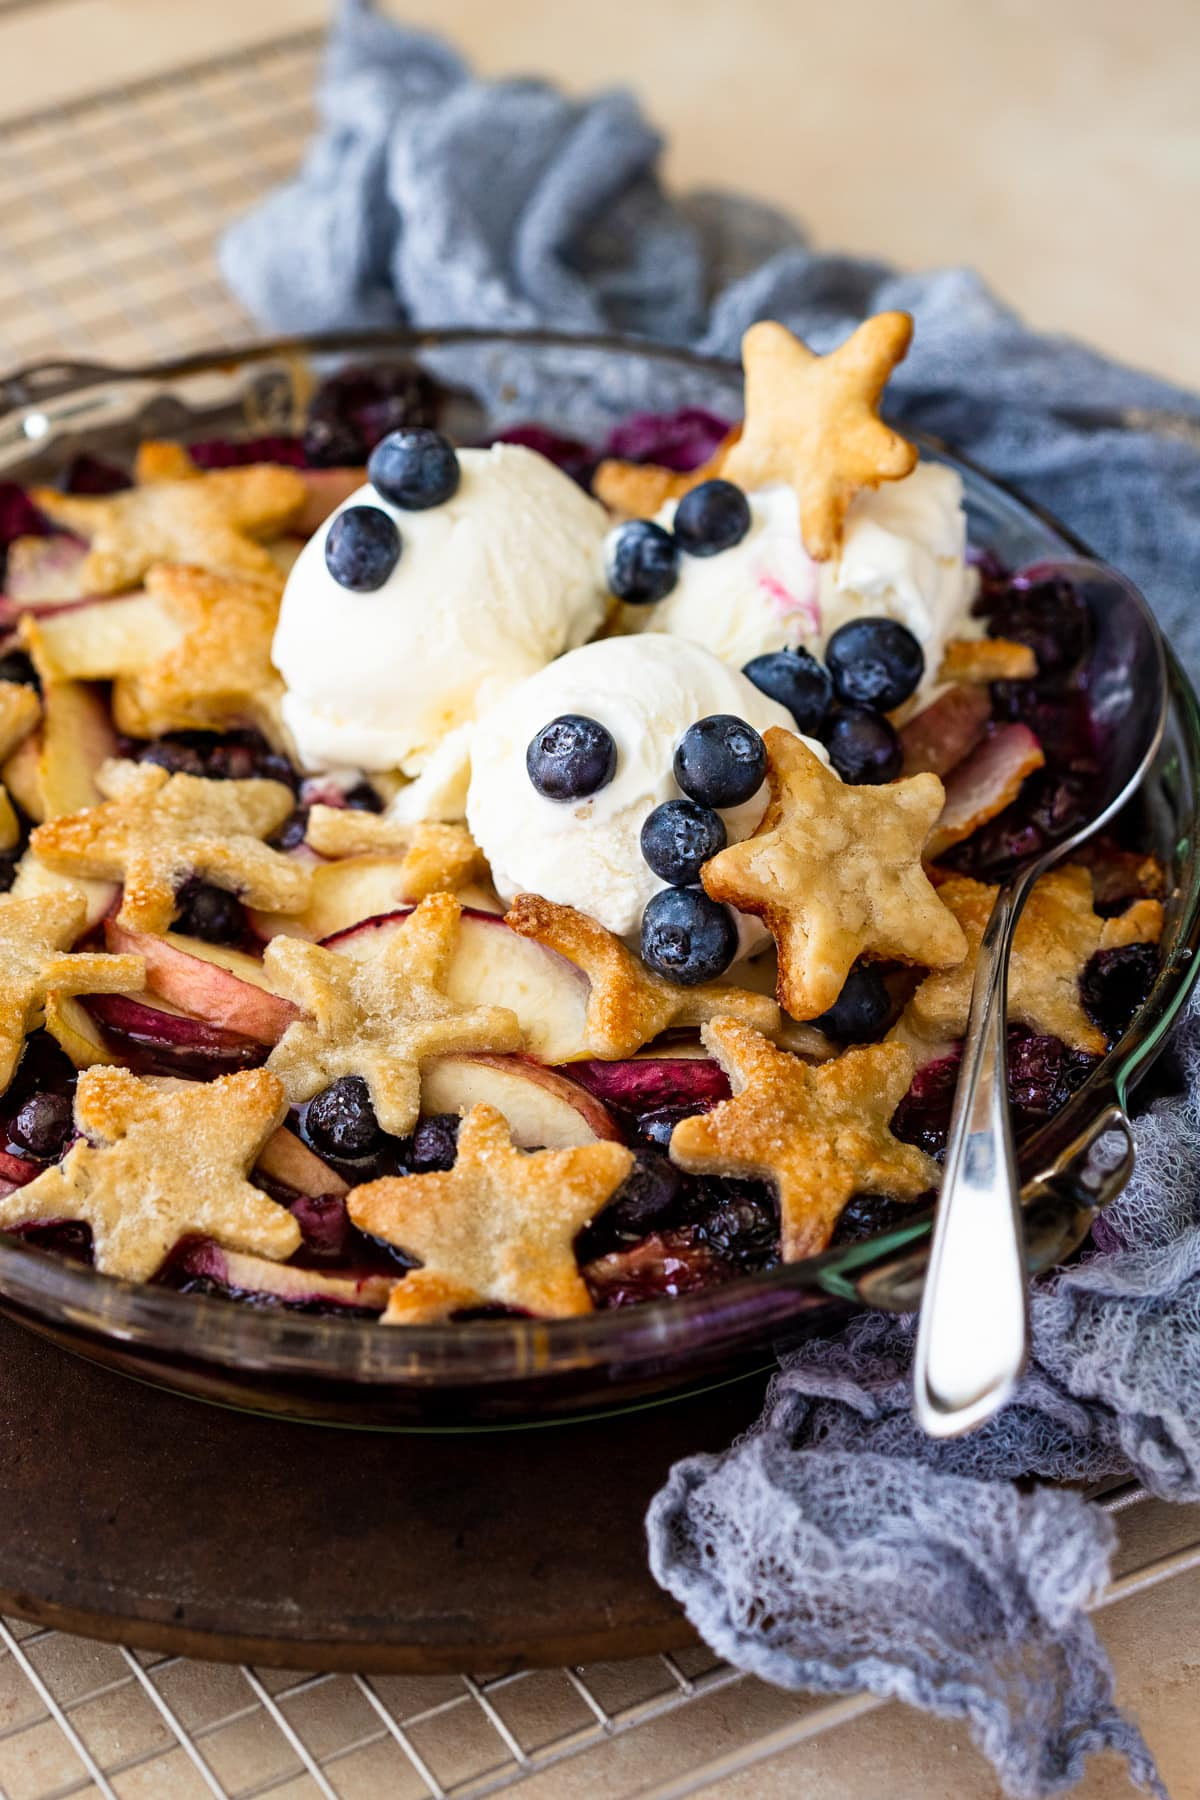 Spoon digging into a cobbler topped with pie crust stars and vanilla ice cream.